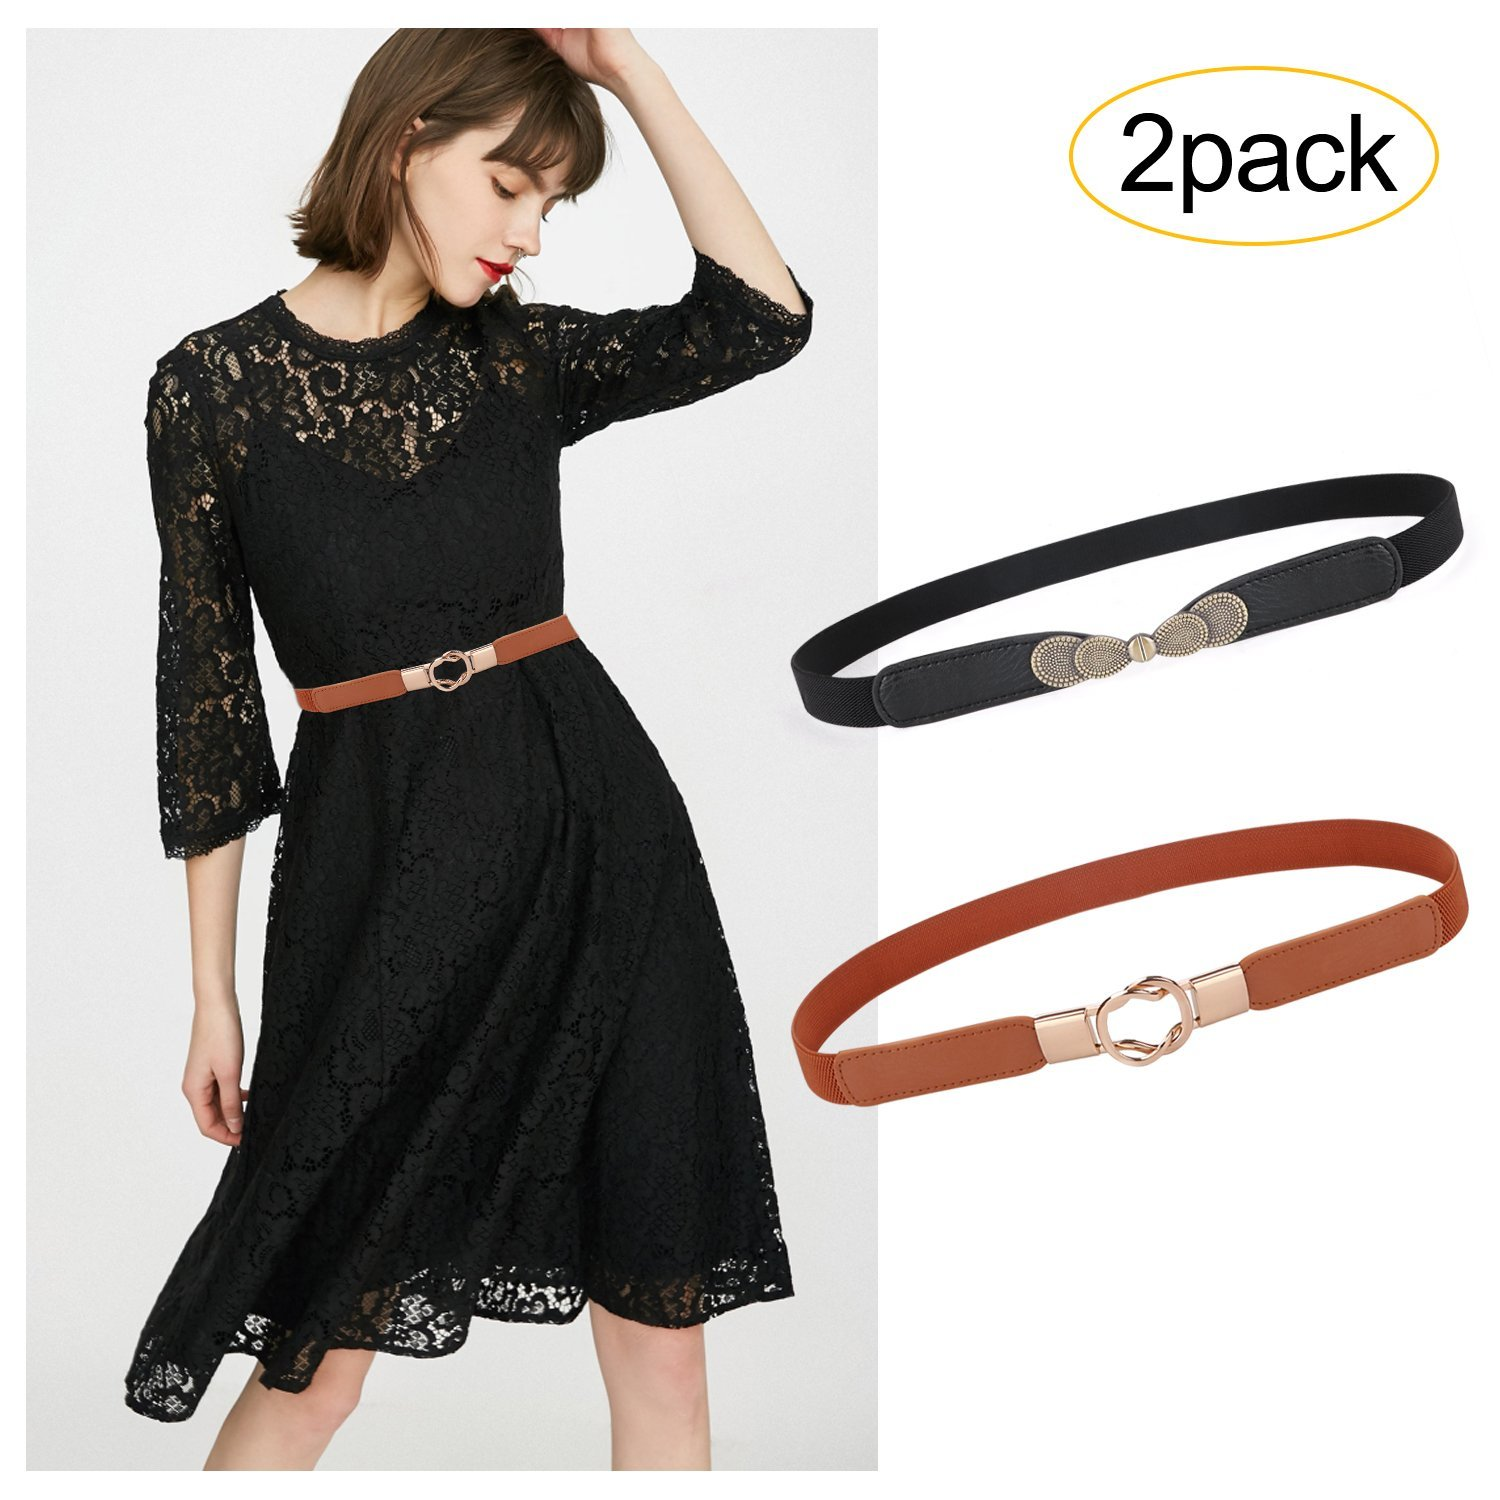 Fashion Elastic Thin Belts For Women Ladies Stretch Skinny Waist Belt For Dress 2 pack by SUOSDEY